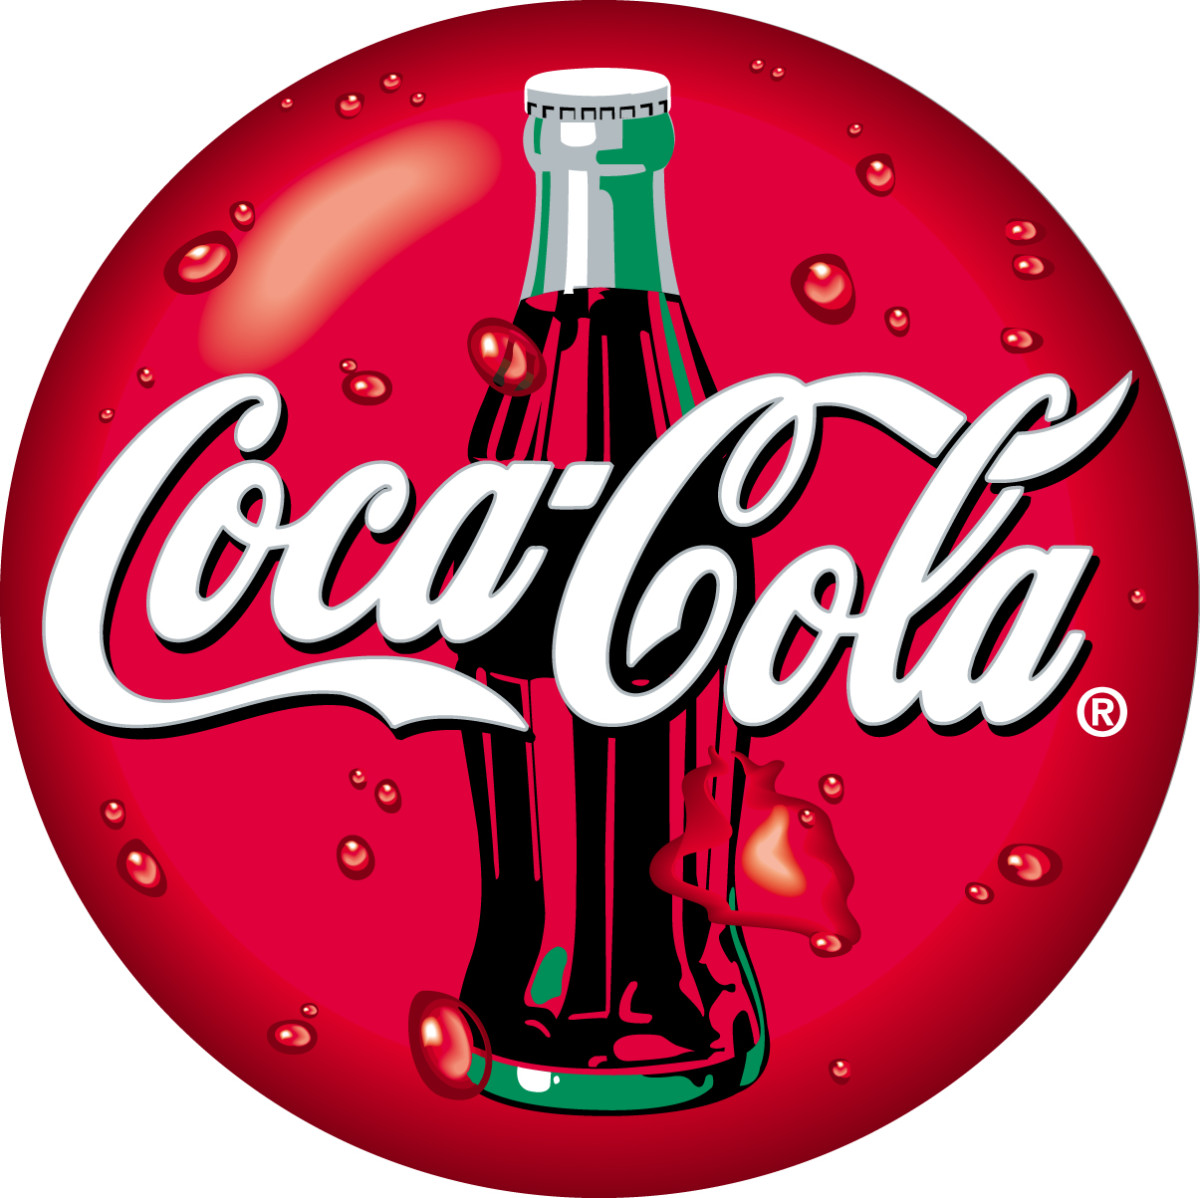 In 1948, Coca-Cola cost five cents a bottle, 25 cents for a six-bottle carton, and $1.00 for a 24-bottle carton.